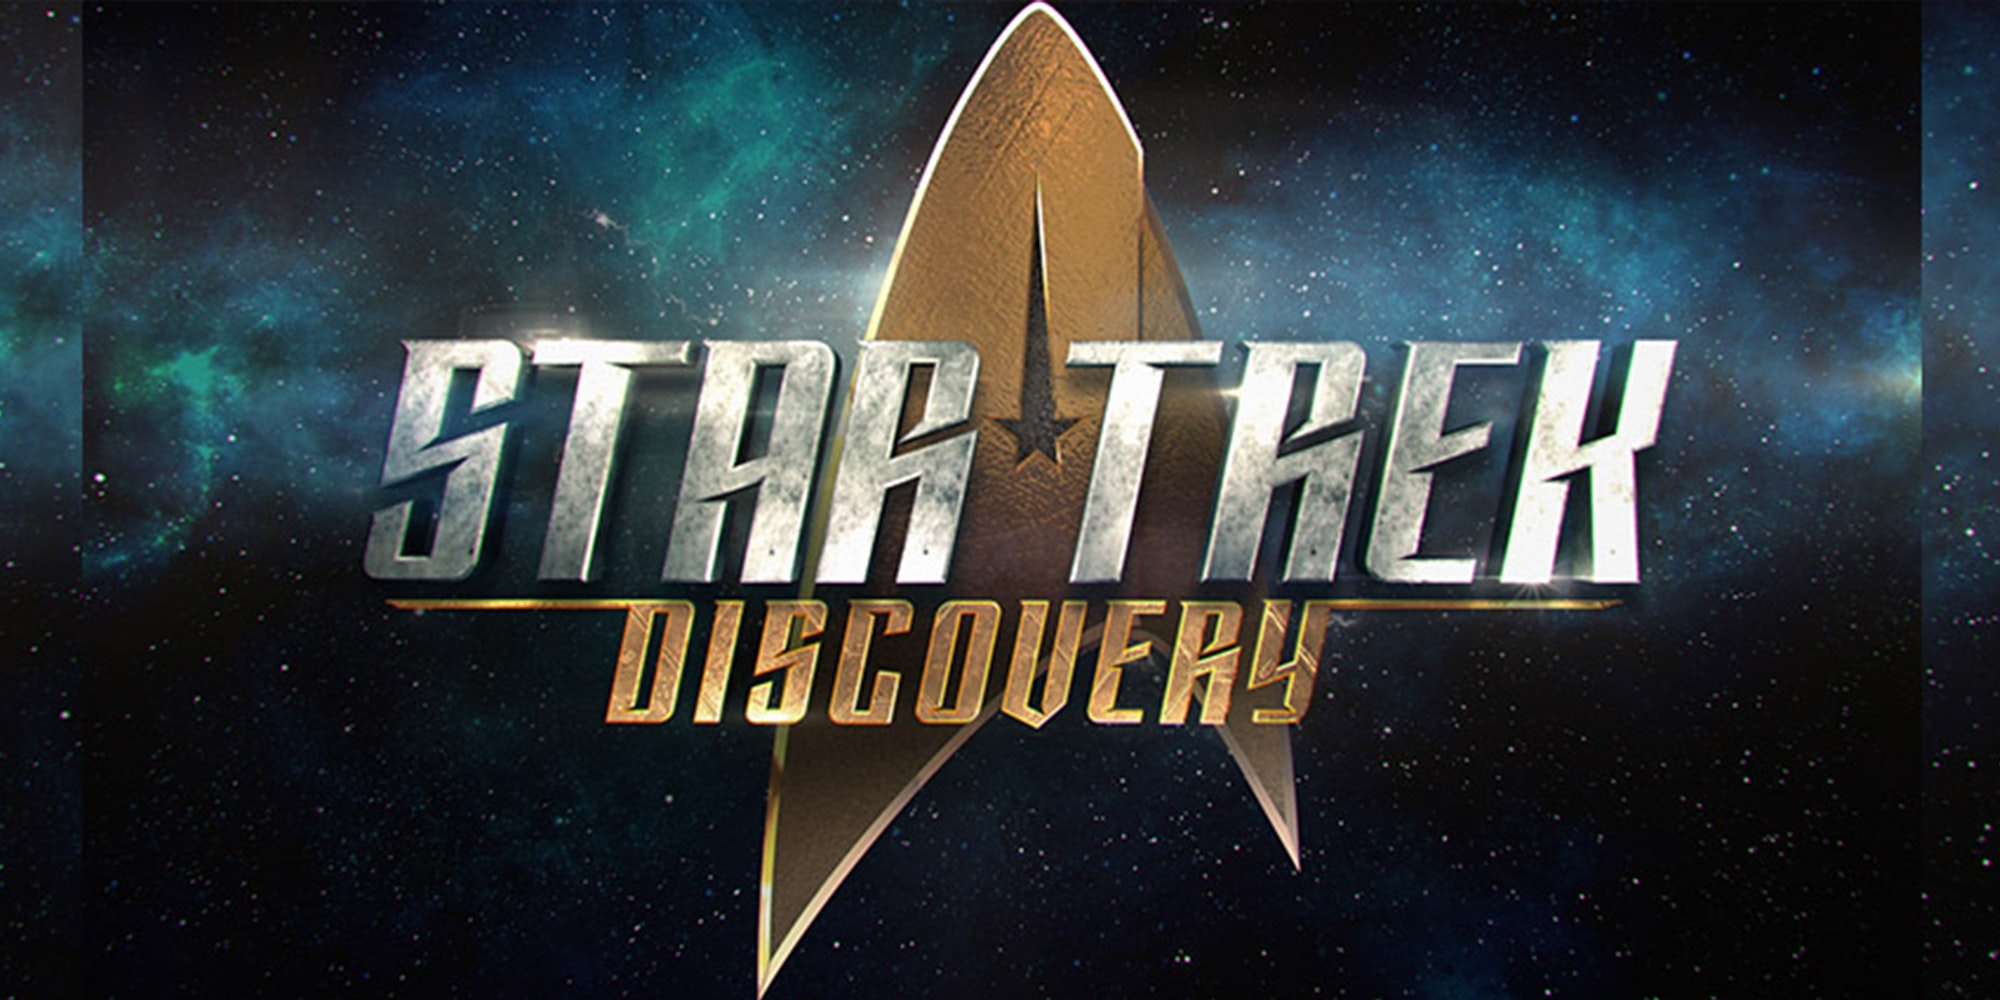 stream Star Trek discovery